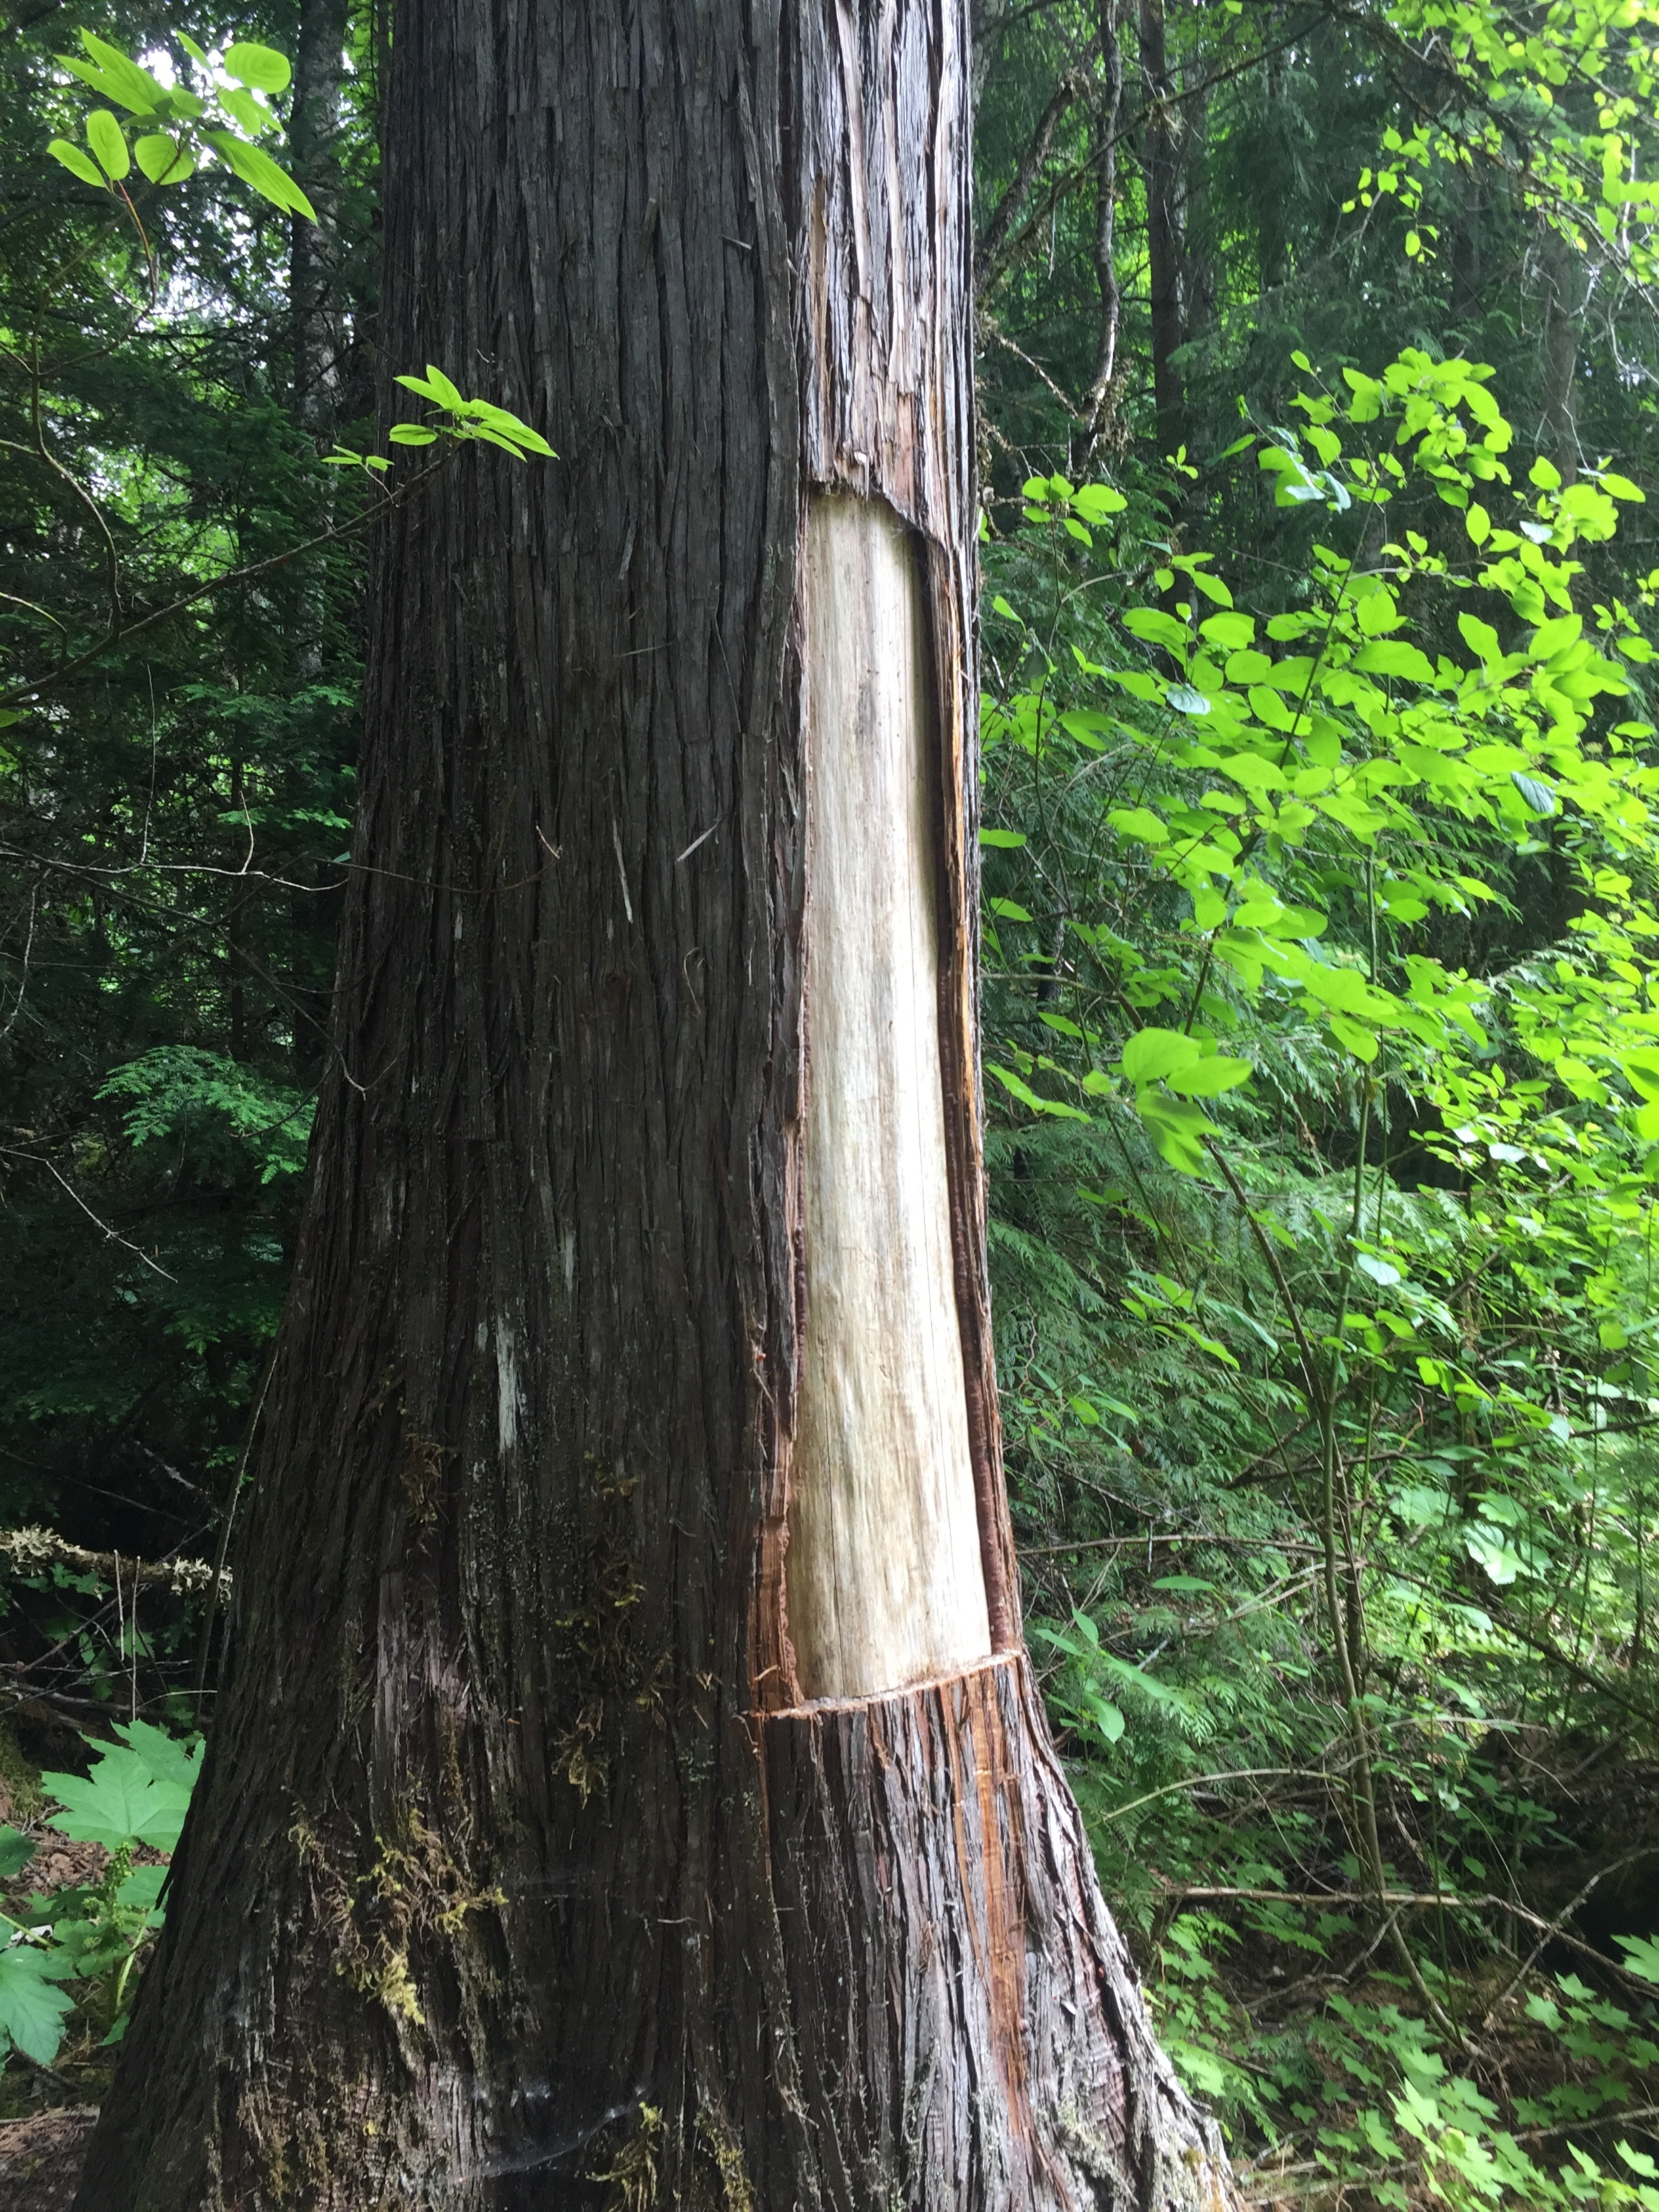 Culturally Modified Tree (CMT) at Ts'itksim Aks (Vetter Falls) in the Nass Valley.